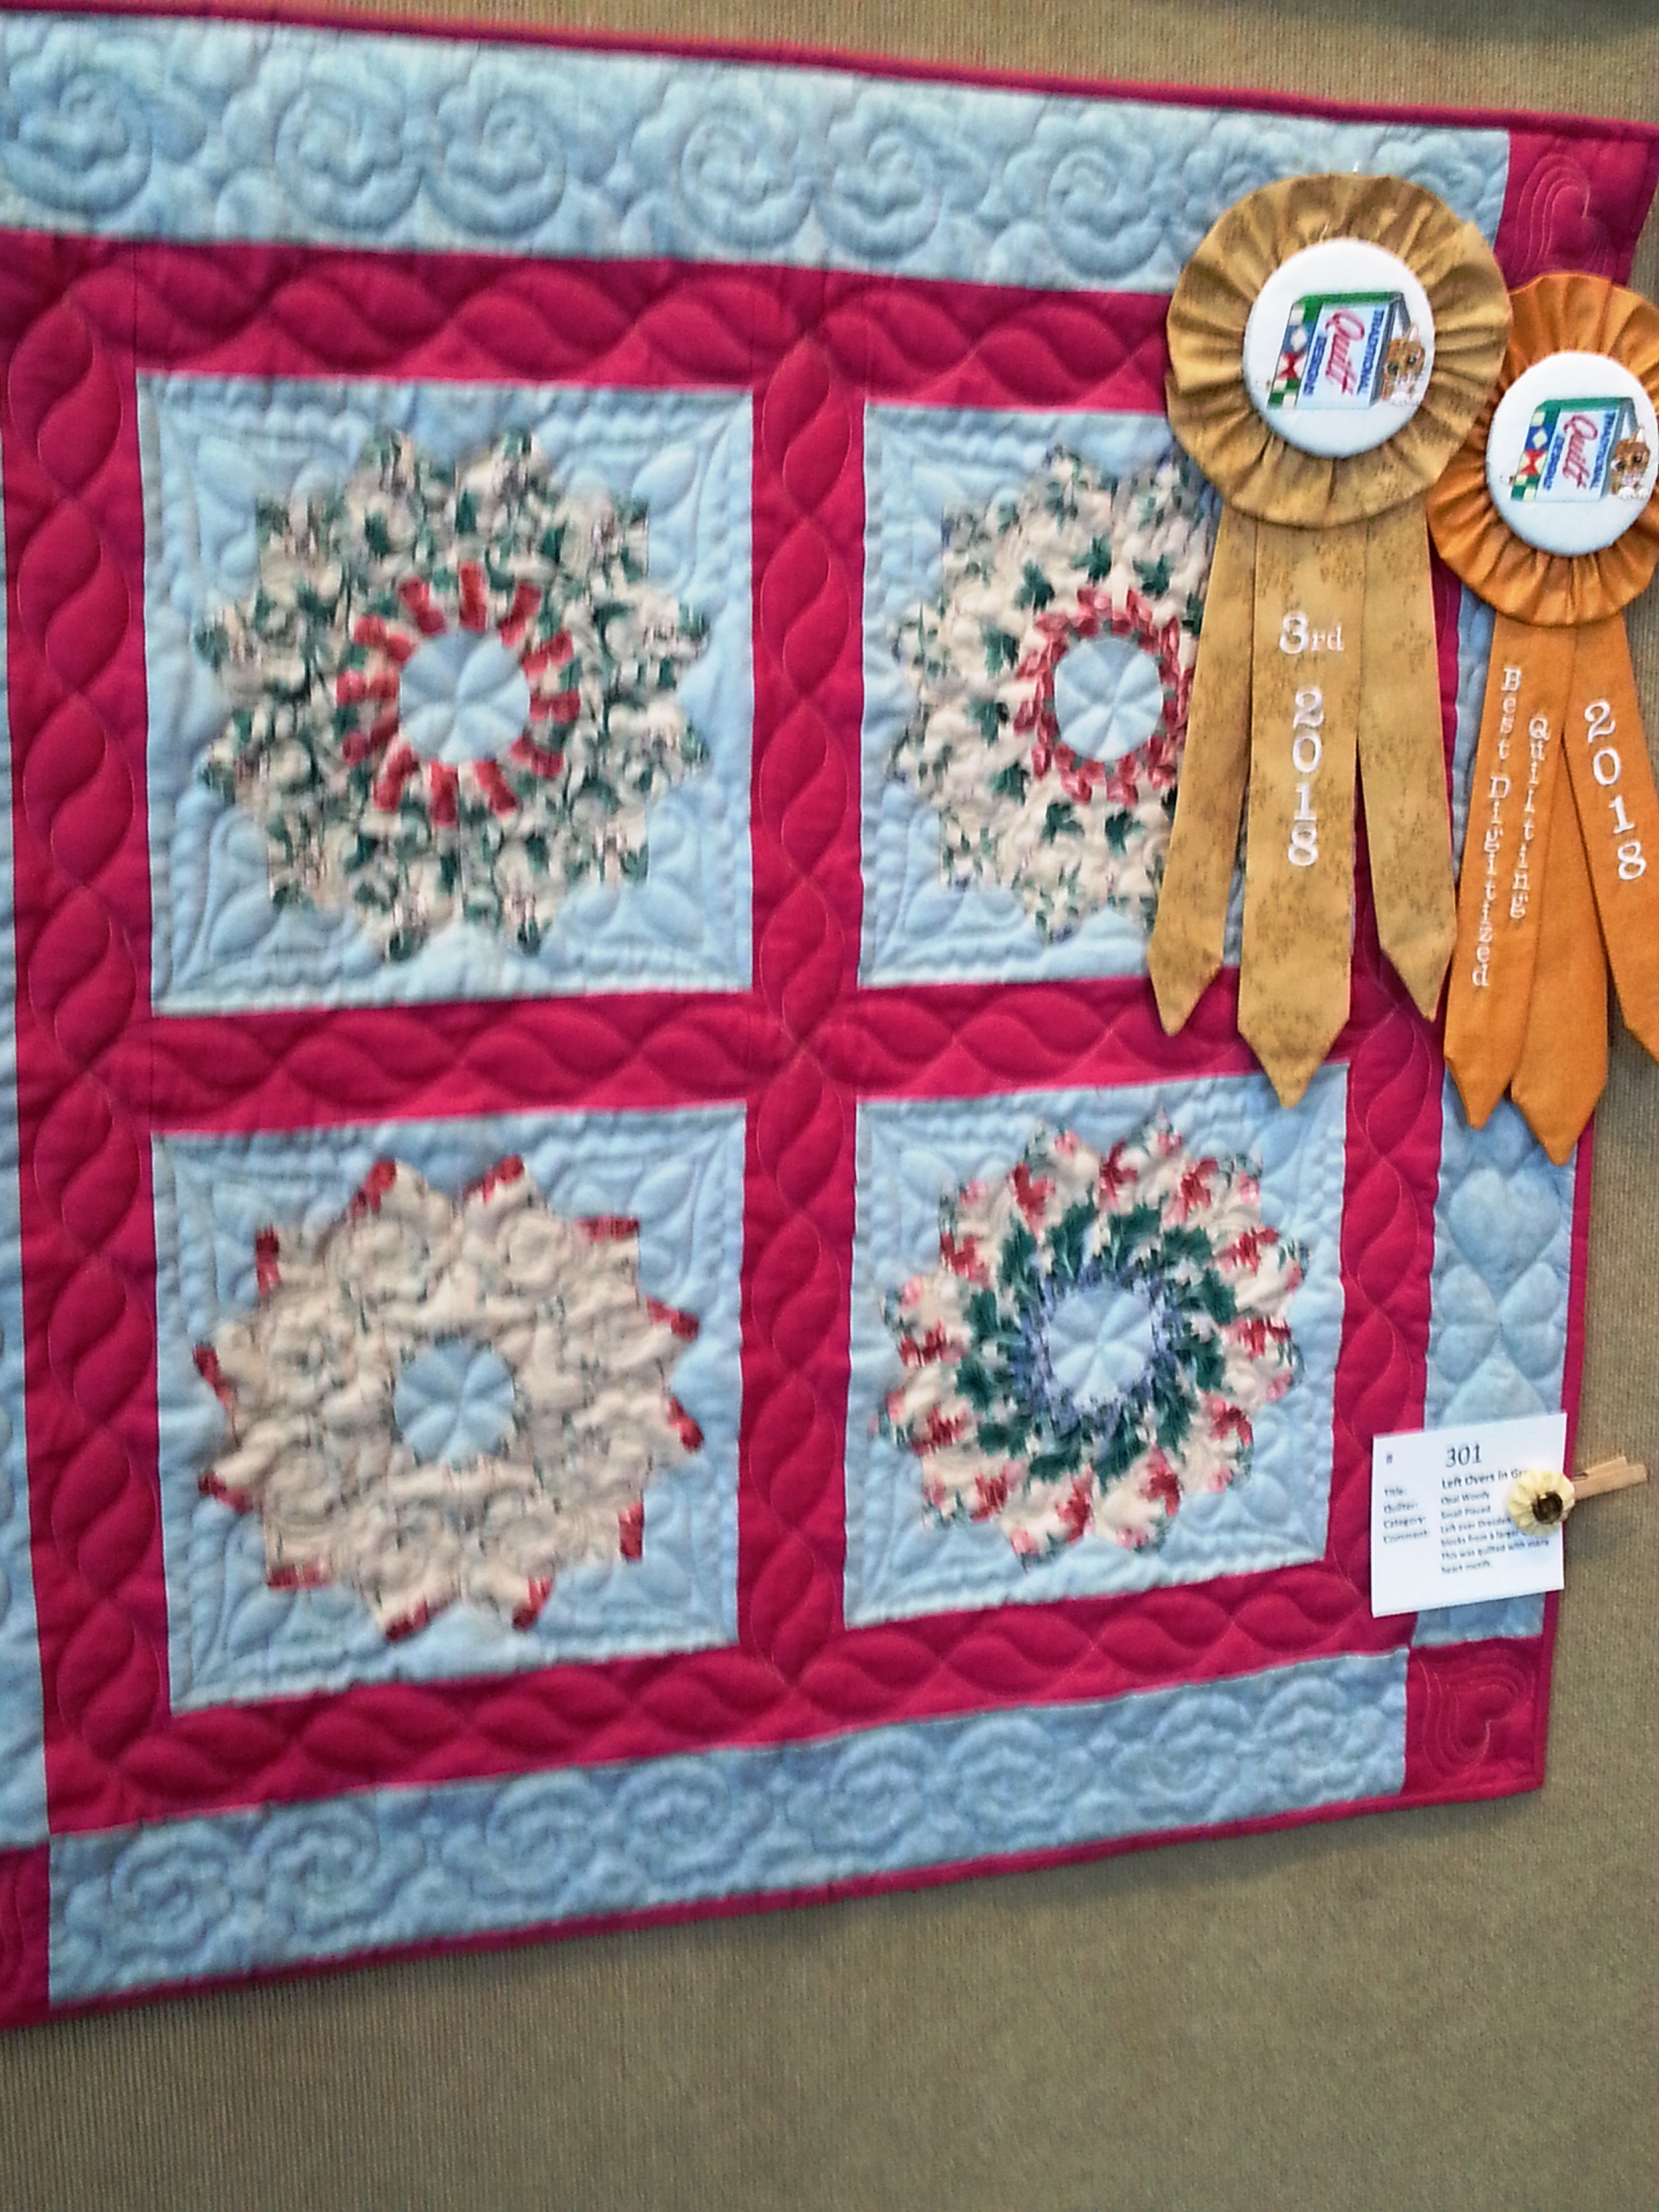 Best Digitized Quilting and 3rd Place - Small Pieced